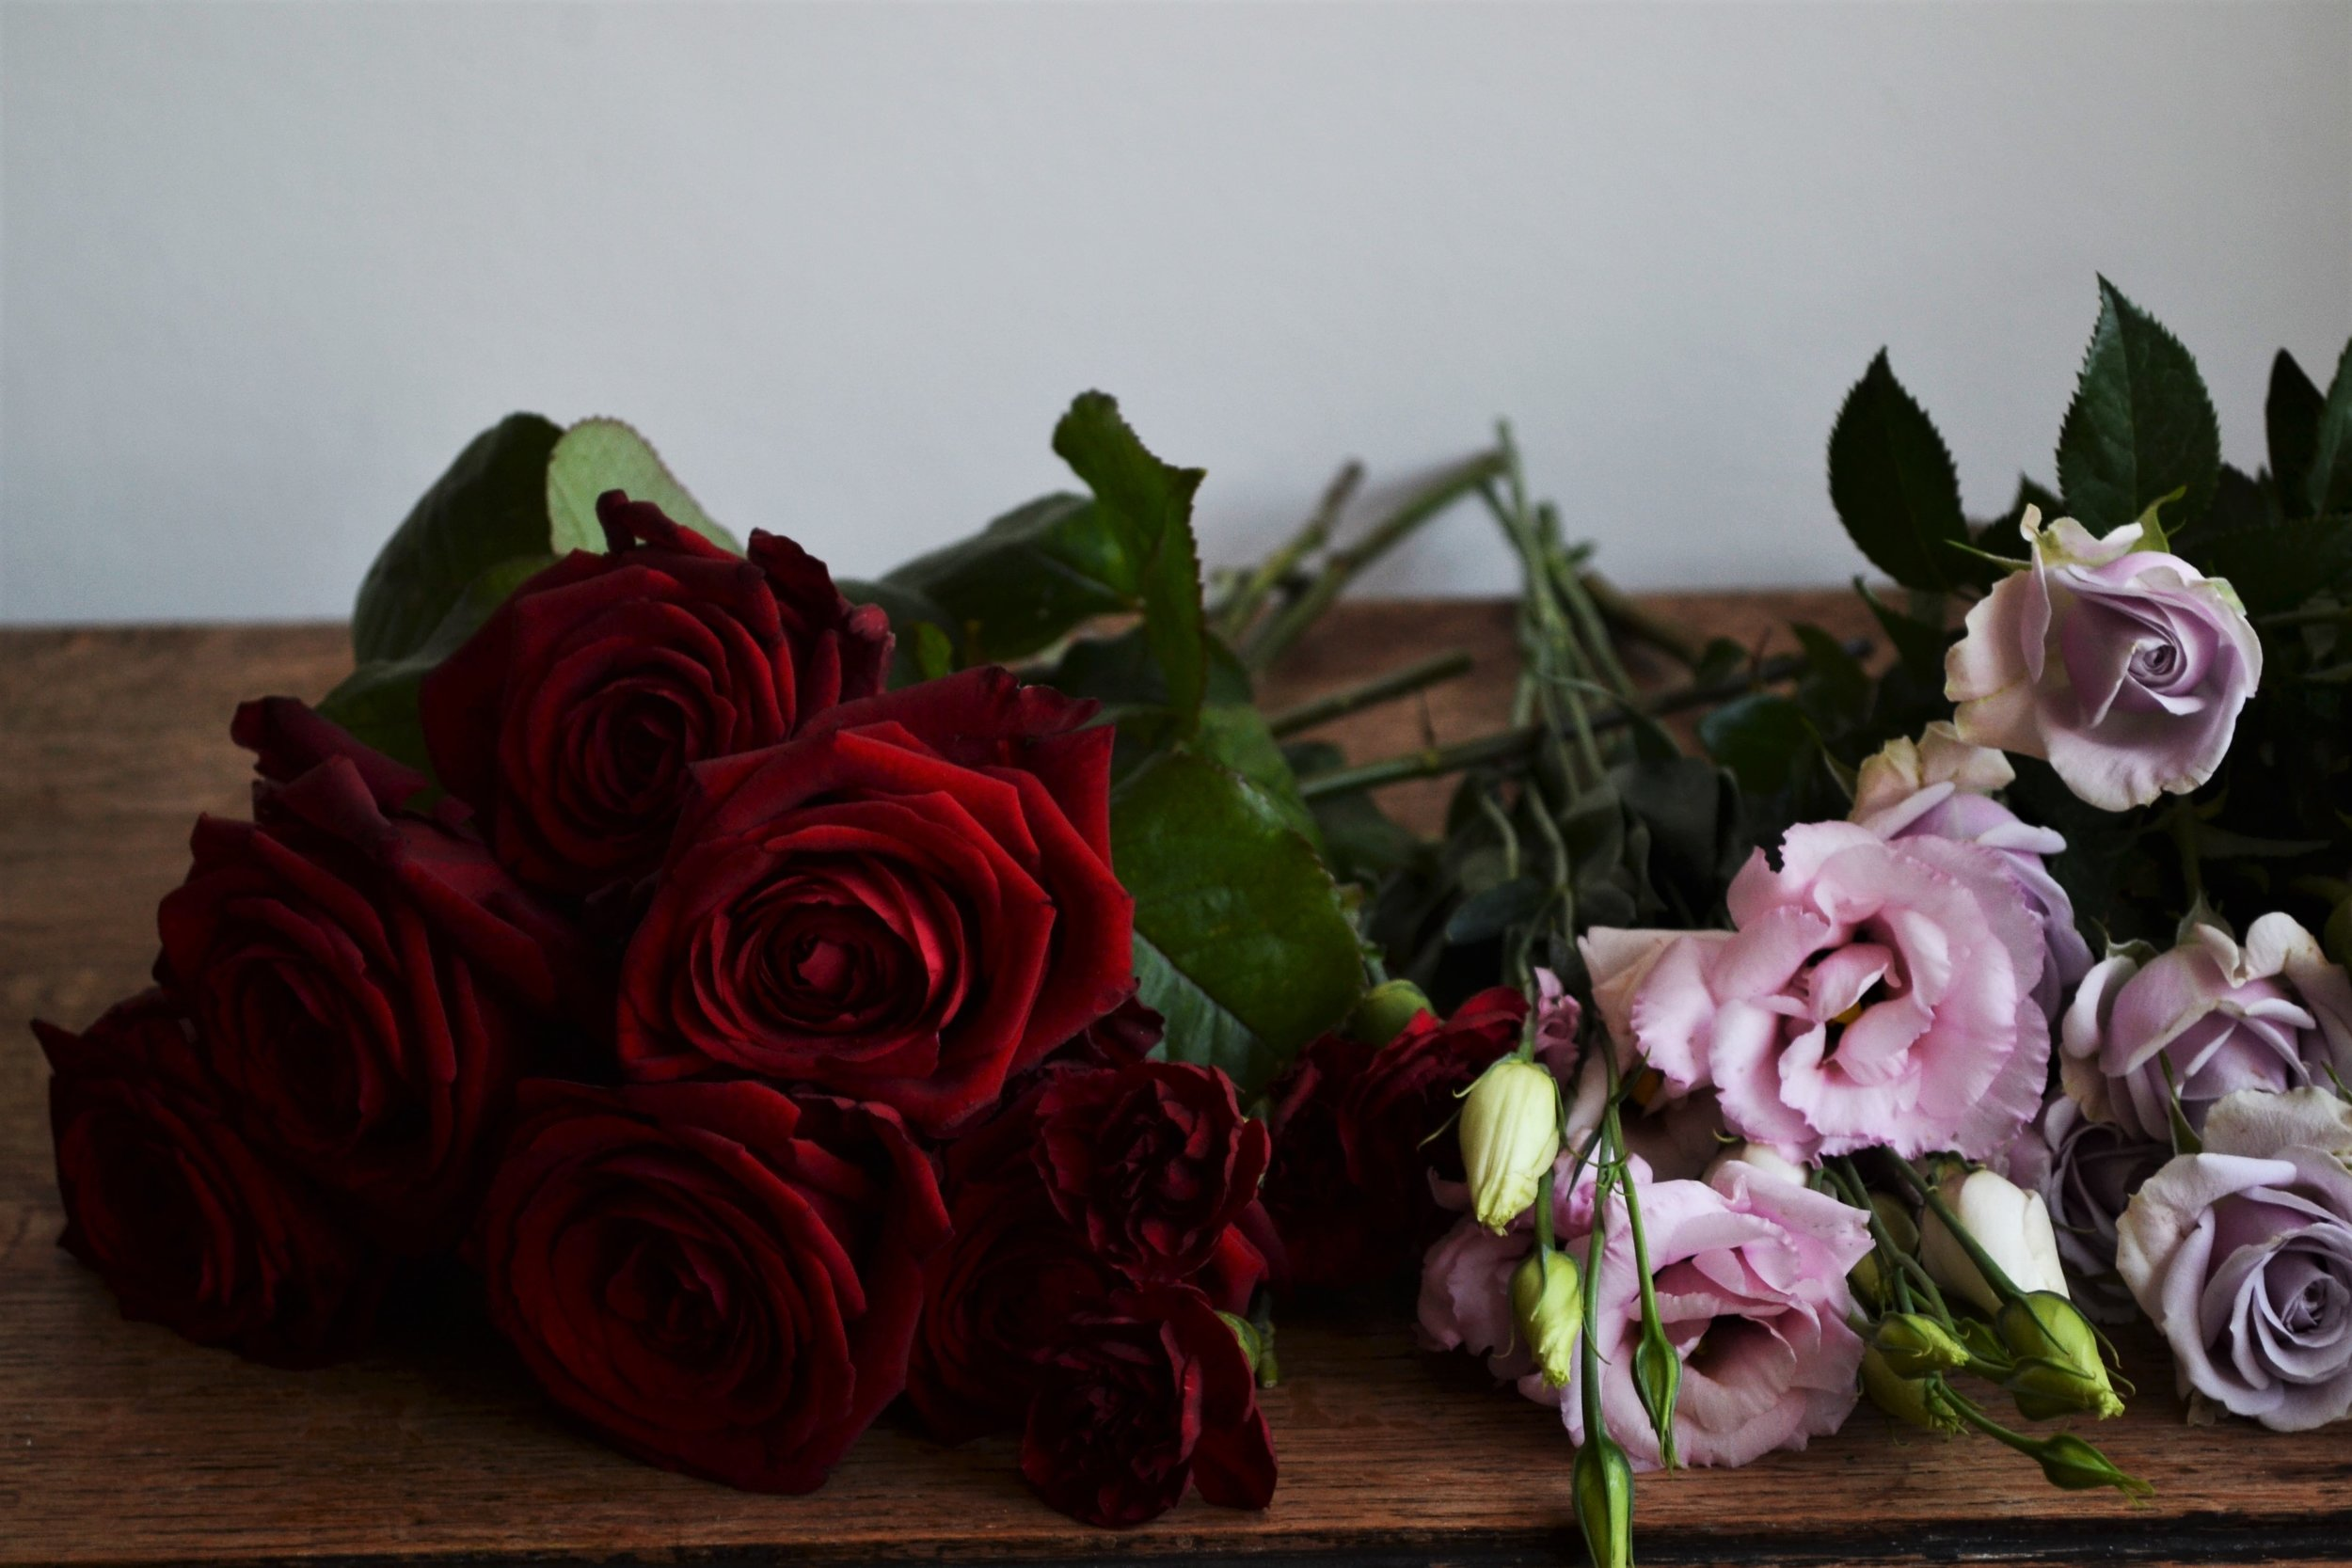 Webb-and-Farrer-Brighton-Florist-Sussex-Wedding-Flowers-Blush-Pink-Burgundy-Bridal-Bouquet (1).JPG